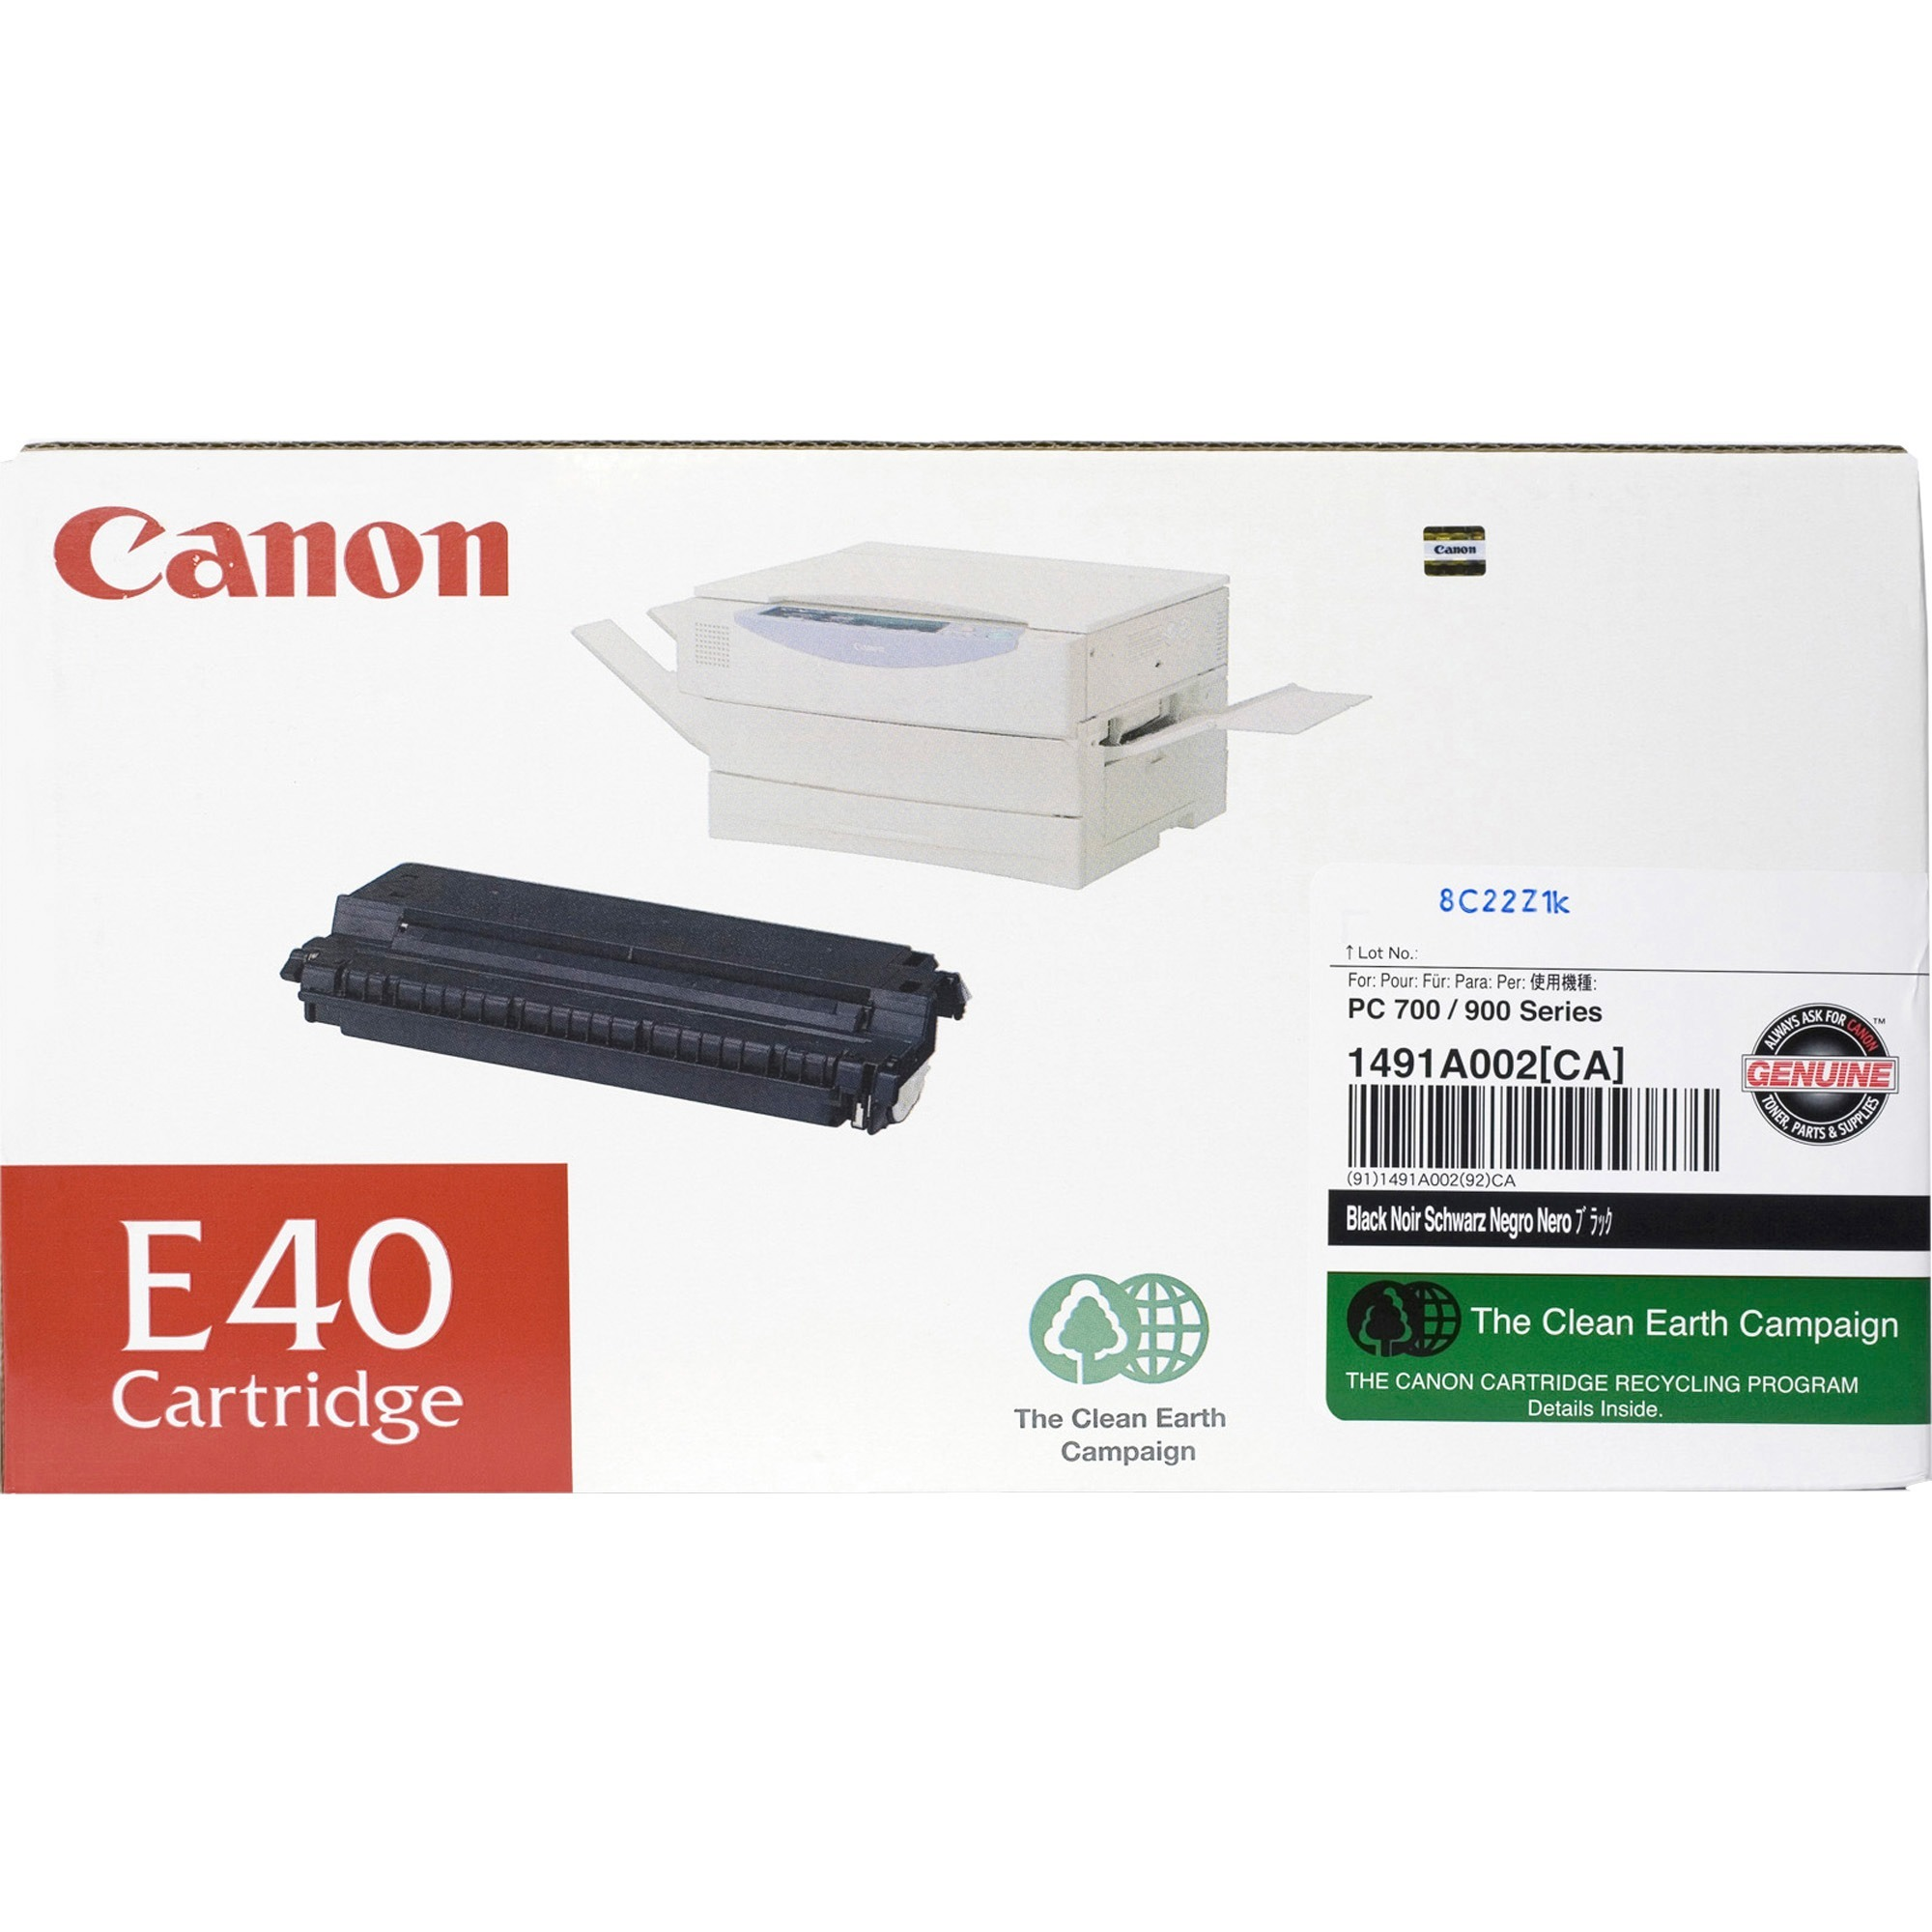 Canon, CNME40, E40 Toner Cartridge, 1 Each